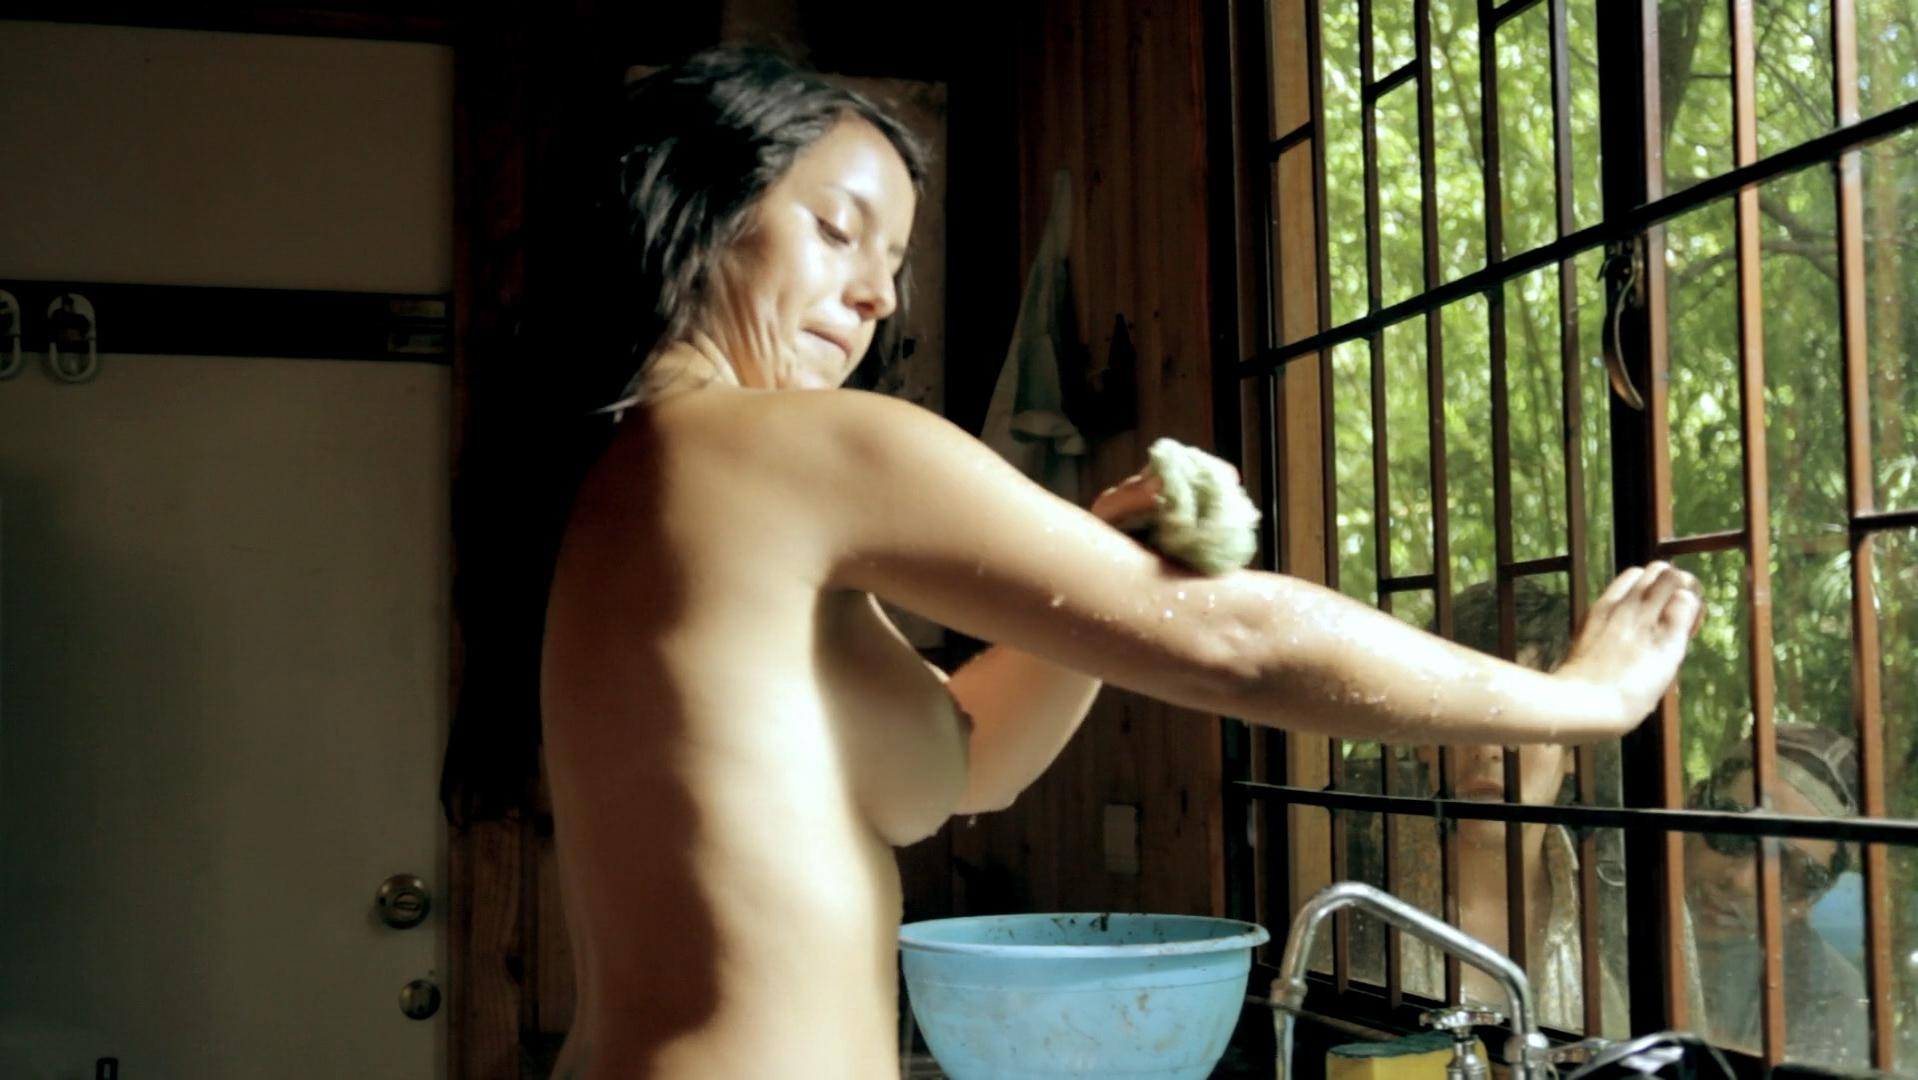 Carolina Escobar nude - Hidden in the Woods (2012)